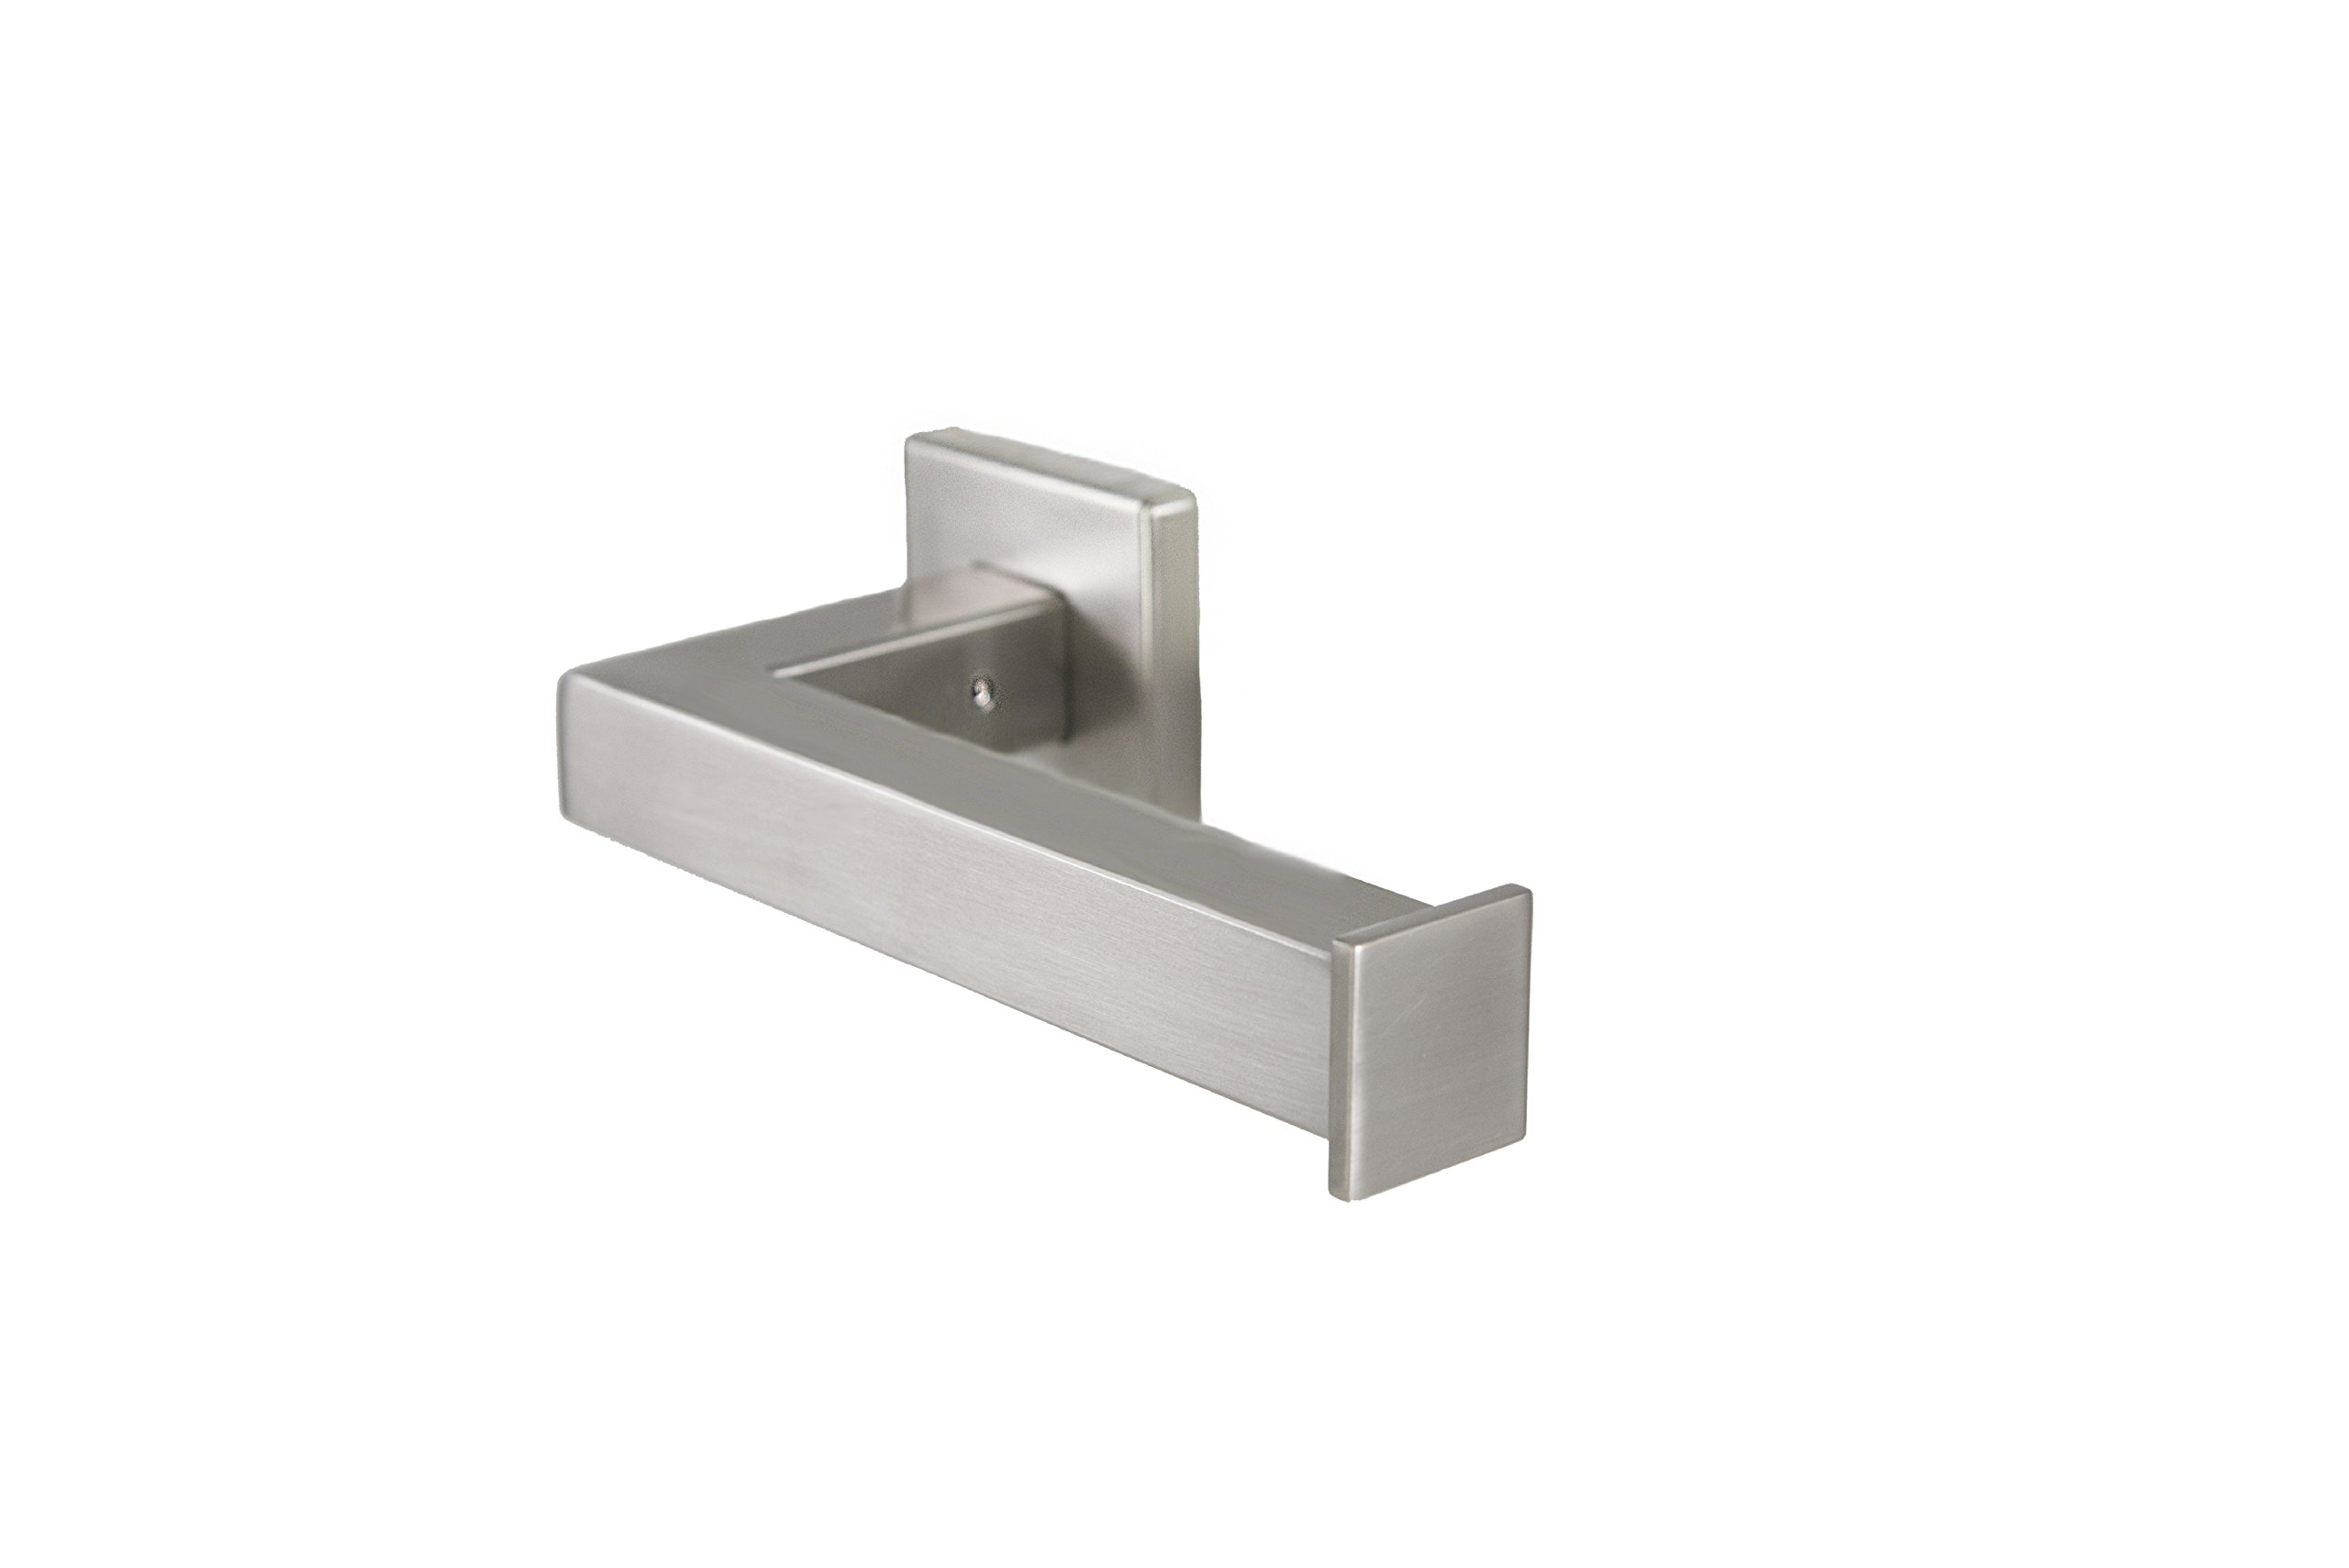 Preferred Bath Accessories 1008-BN-MV-E Primo Collection European Toilet Paper Holder, Brushed Nickel by Preferred Bath Accessories